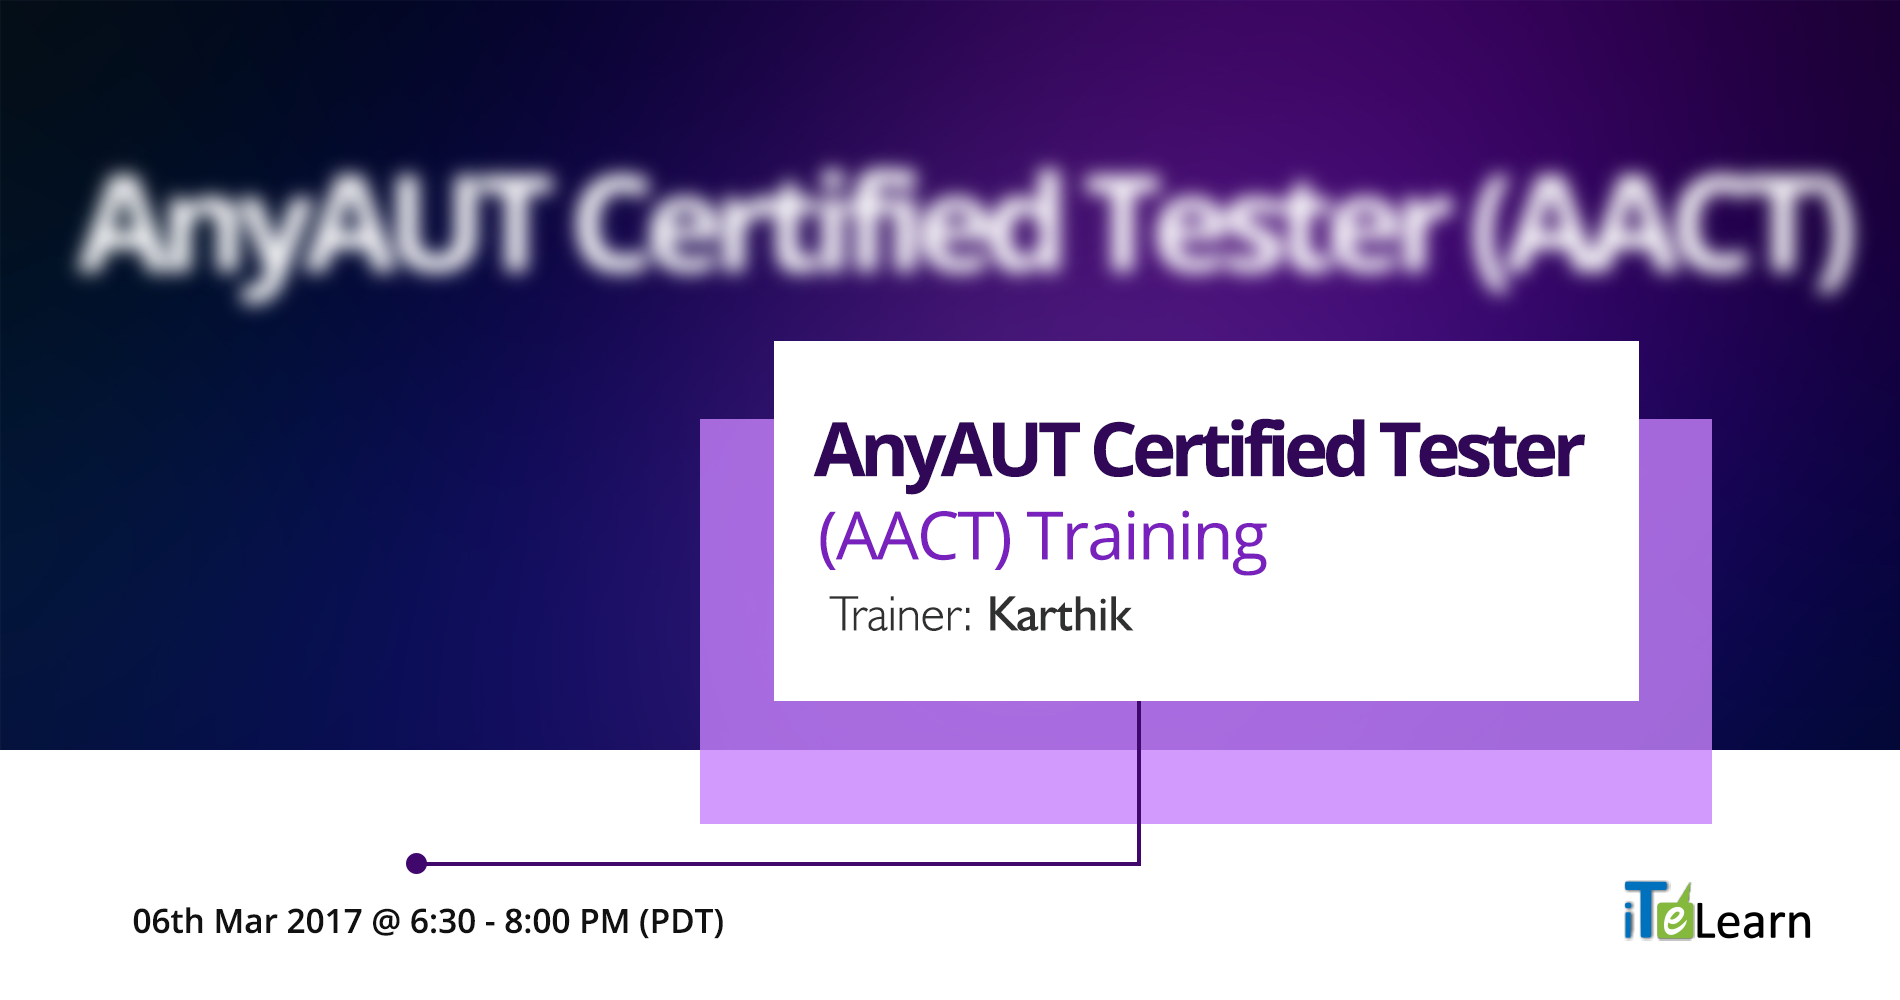 AnyAUT Certified Tester (AACT) Training is a 7-hours free LIVE ONLINE traning for beginners to IT that helps kick start a career in QA/Software Testing.   Registration URL : http://itelearn.com/anyAUT/ Date and Time : 6th to 14th March, 2017. From 6:30-8:00PM PT. Cost : FREE. Projects : 1 Practice Project + 1 Real Project Seats : Limited AACT Training Advantages - Foundation level training for Software Testing. - Perfect fit for those looking to enter IT industry.